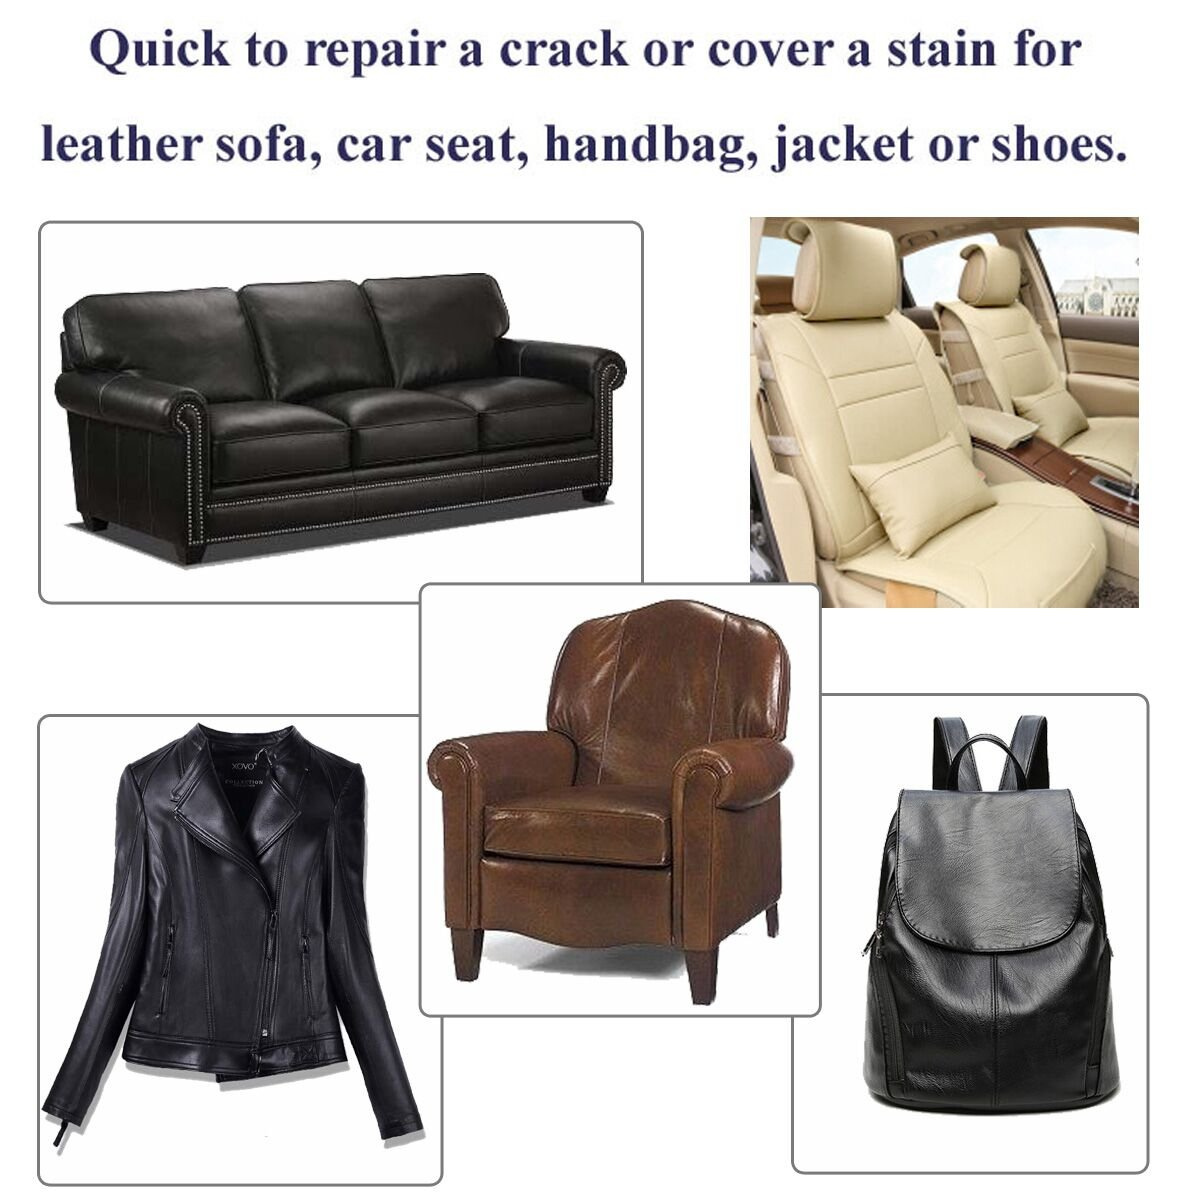 Amazon.com: Leather Patch   Adhesive Backing   Repair Sofa, Car Seat,  Jackets, Shoes And Handbag, 10 Inch By 6 Inch, Black   By Beaulegan